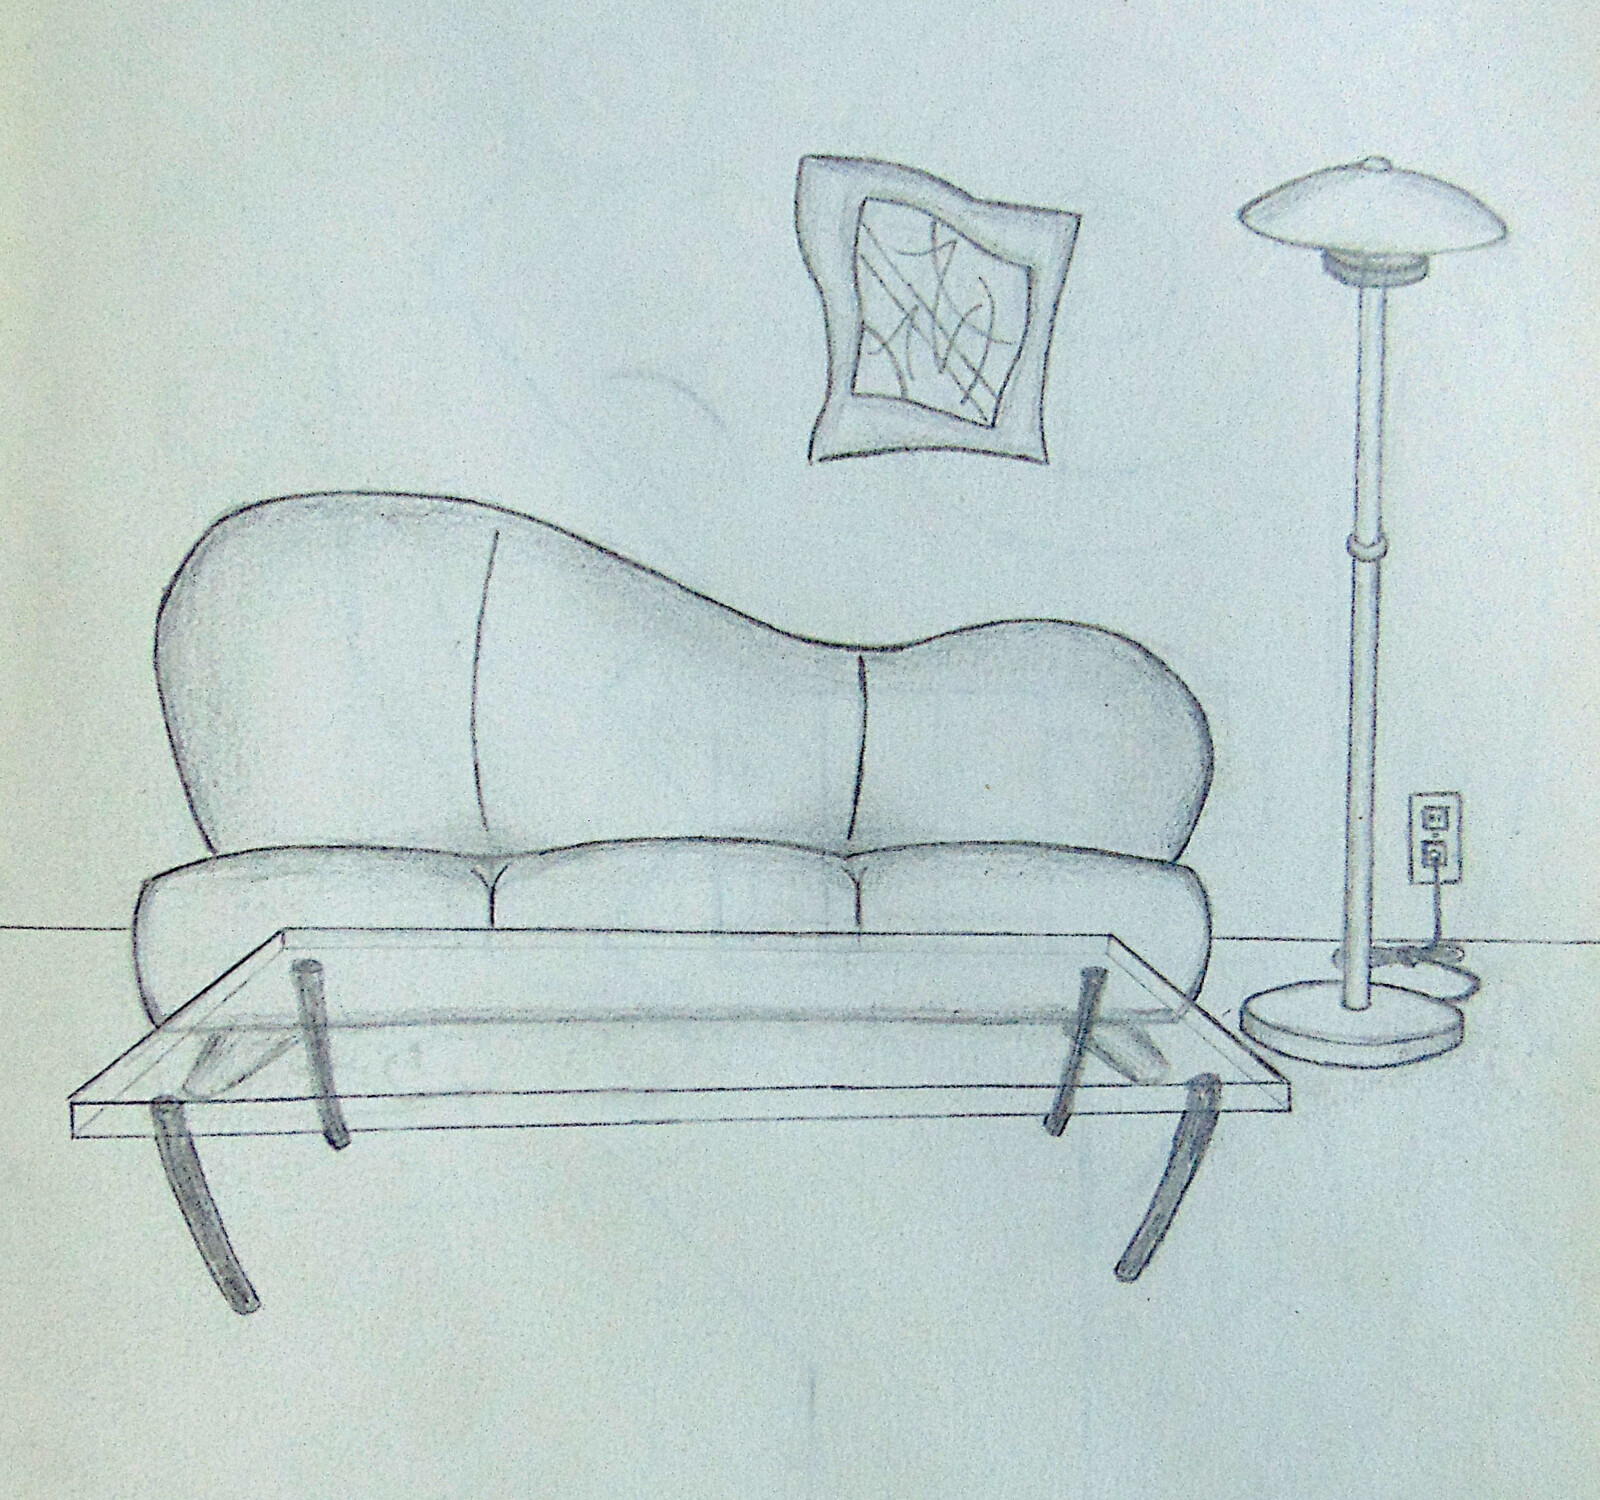 Drew this around age 15 thinking about how cool it would be living on my own one day.